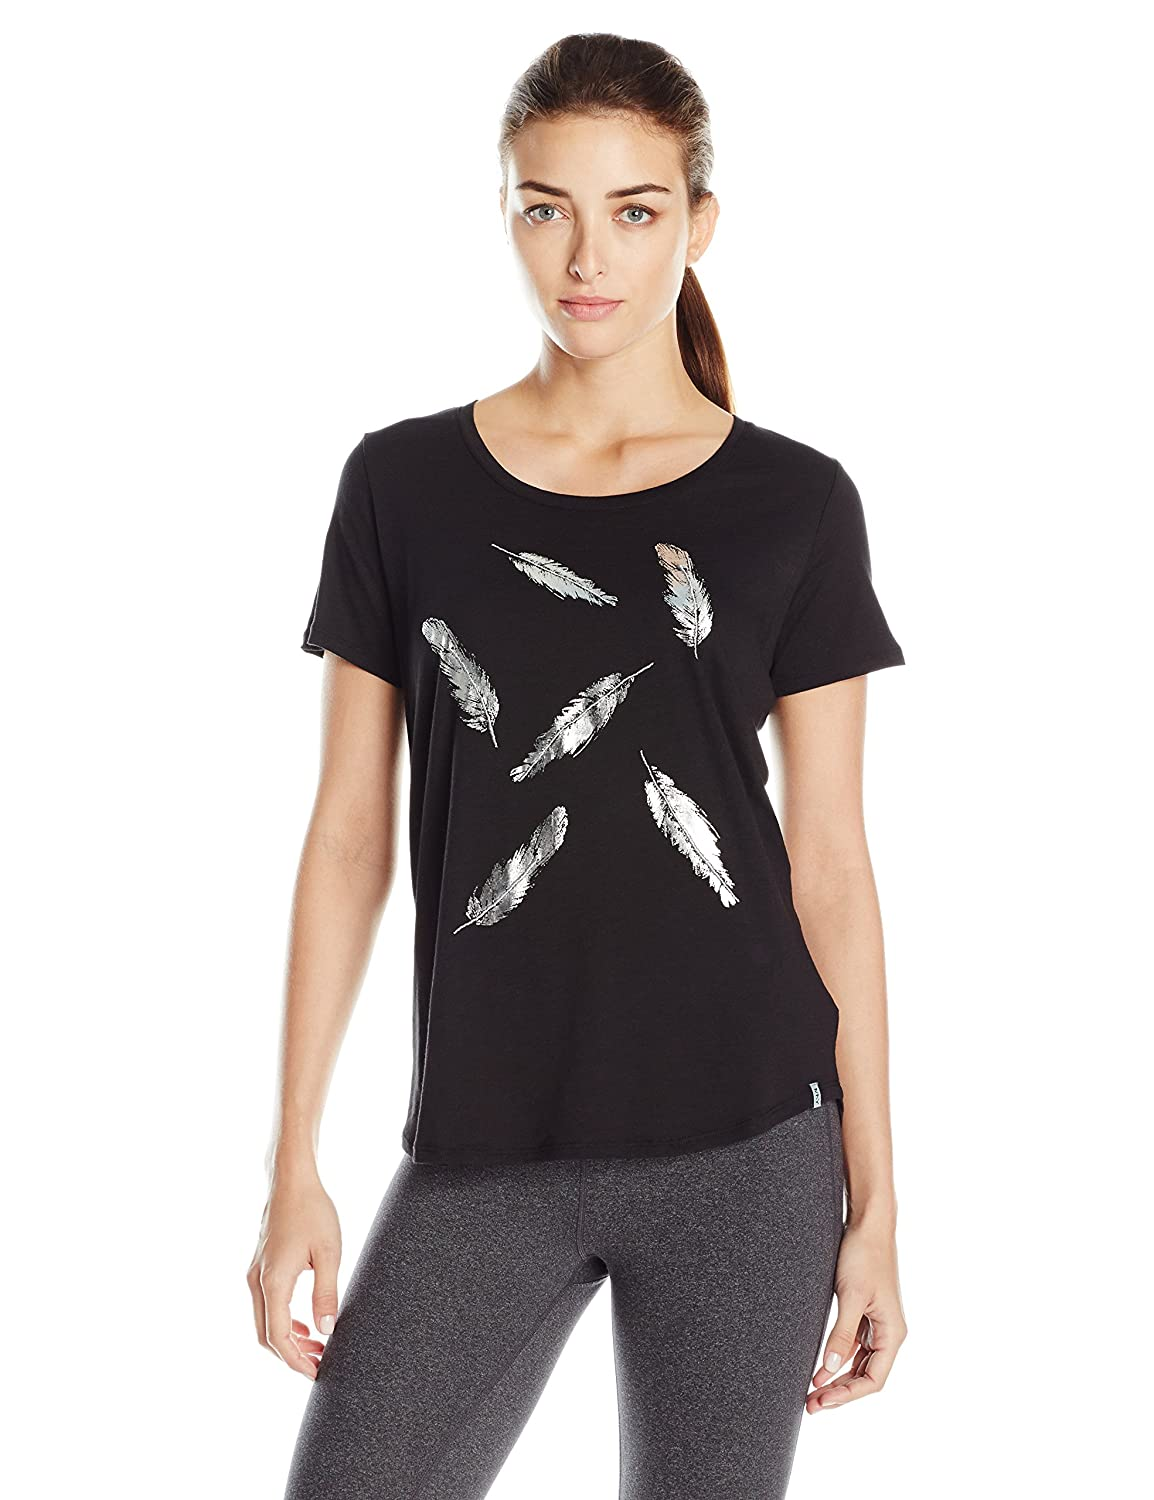 Marc New York Performance Womens Short Sleeve Scoop Neck Tee with Graphic